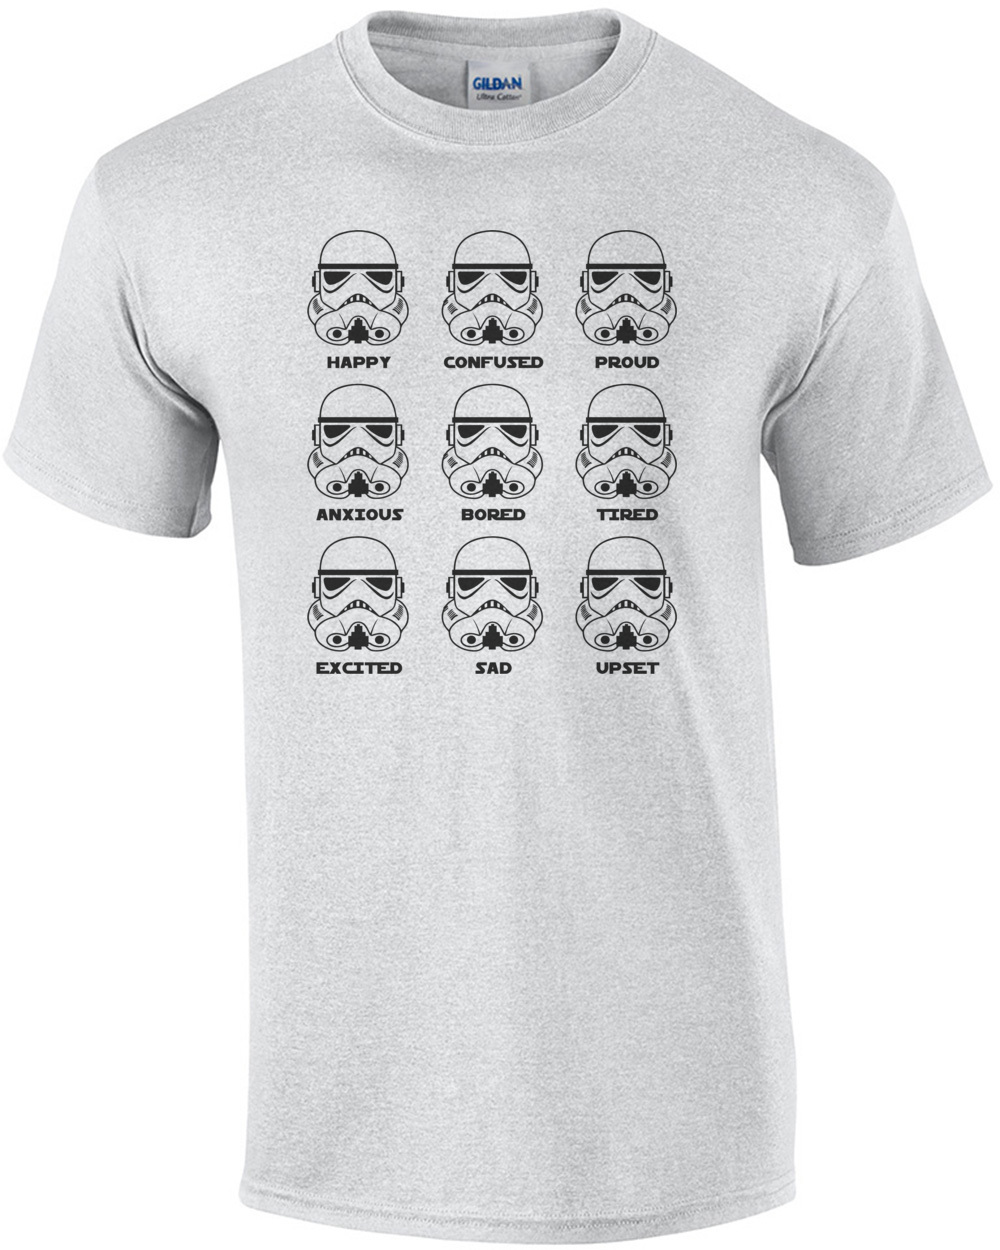 ad63a941 Stormtrooper Emotions - Funny Star Wars T-Shirt